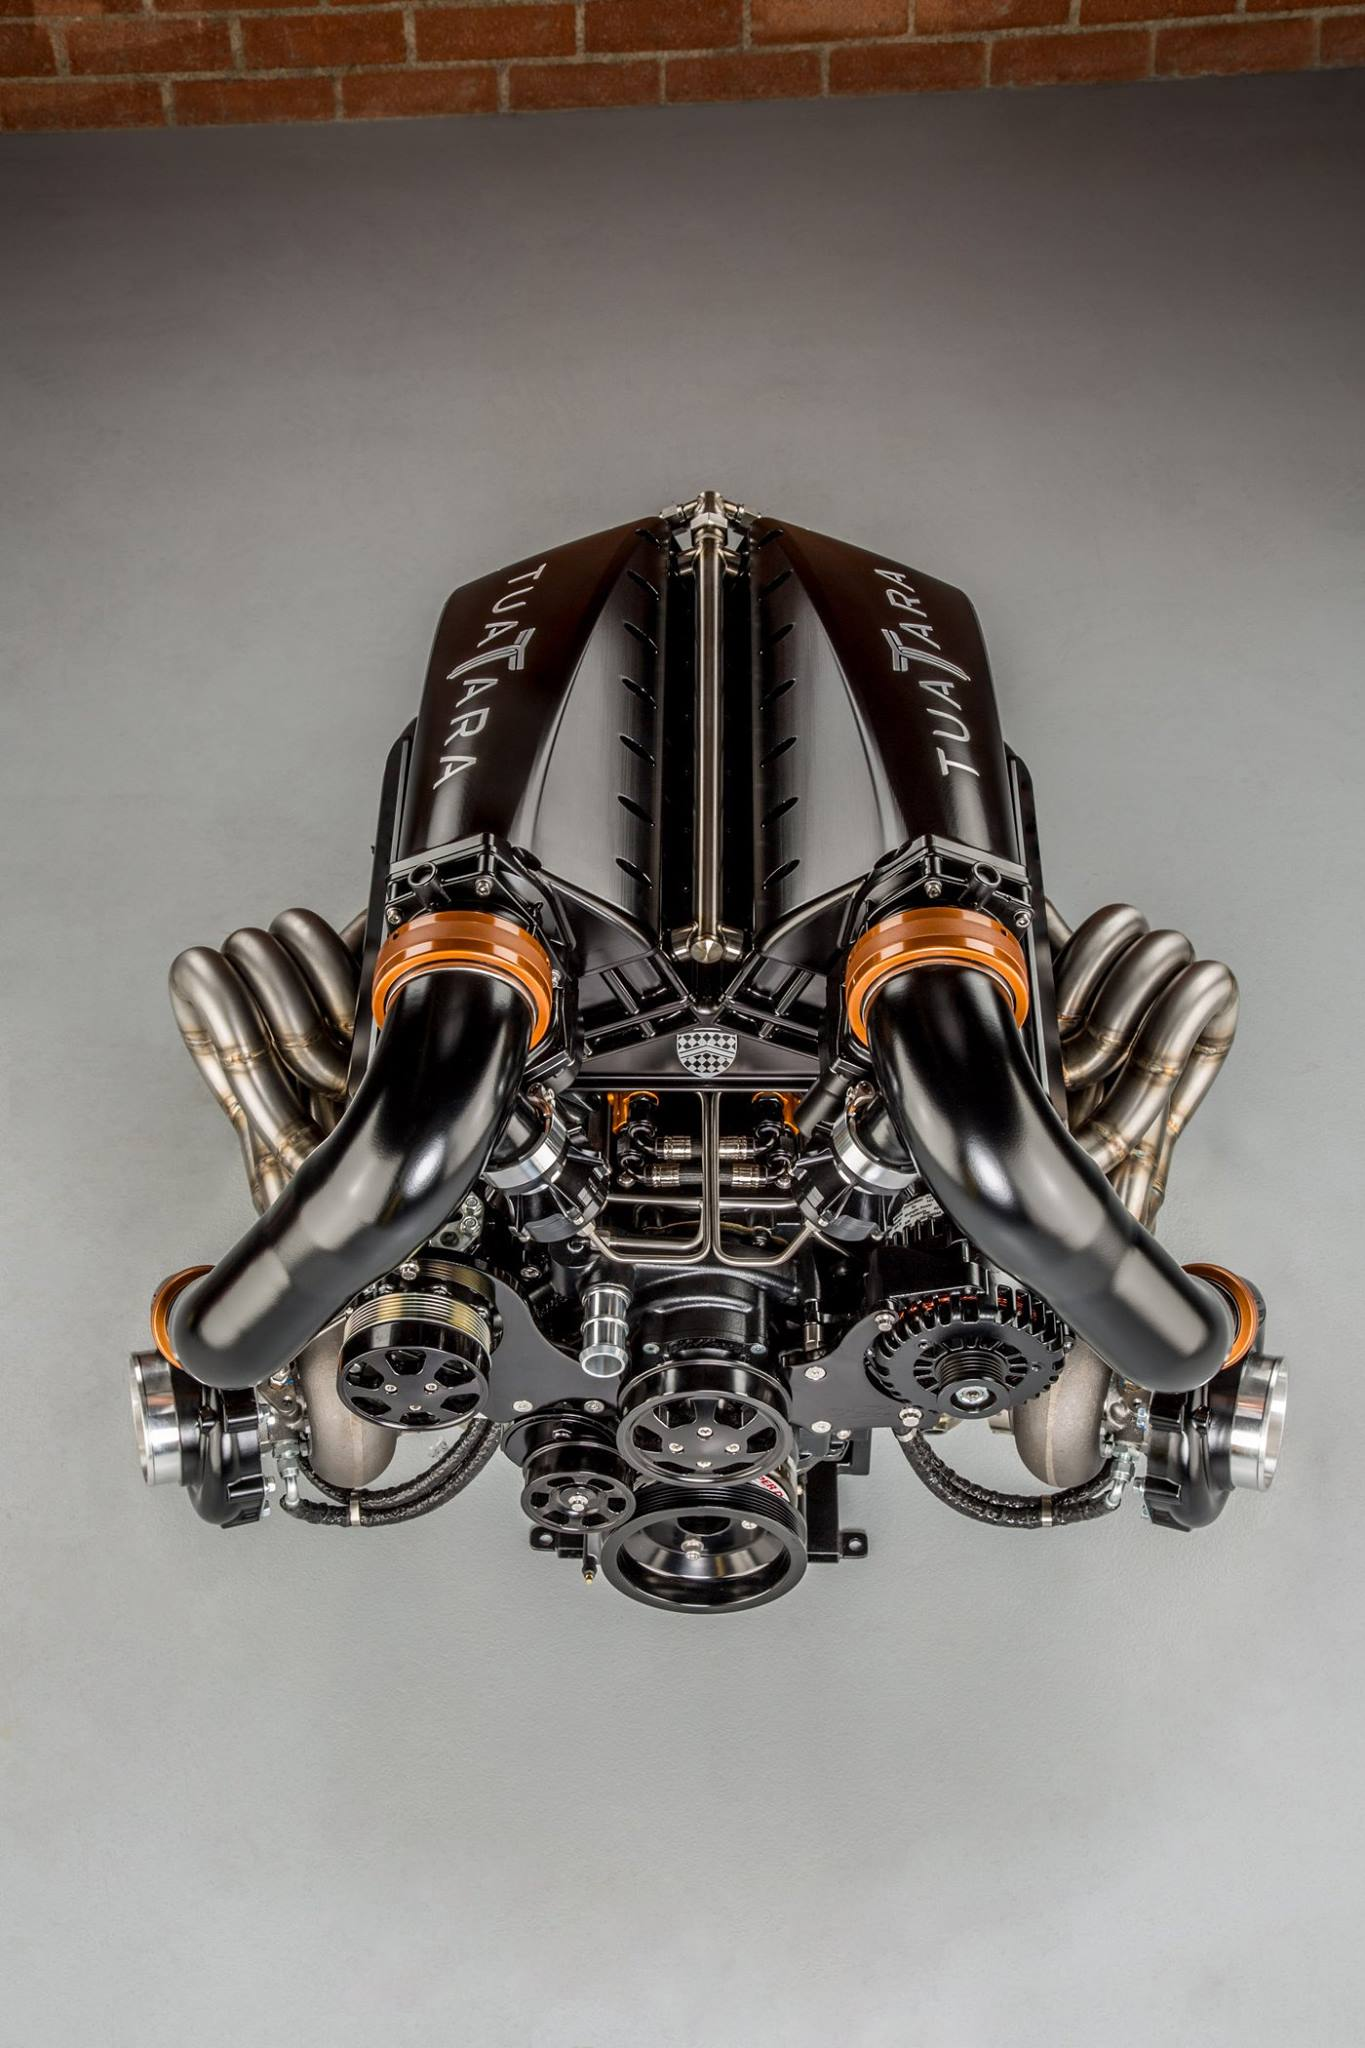 ssc-tuatara-engine-1